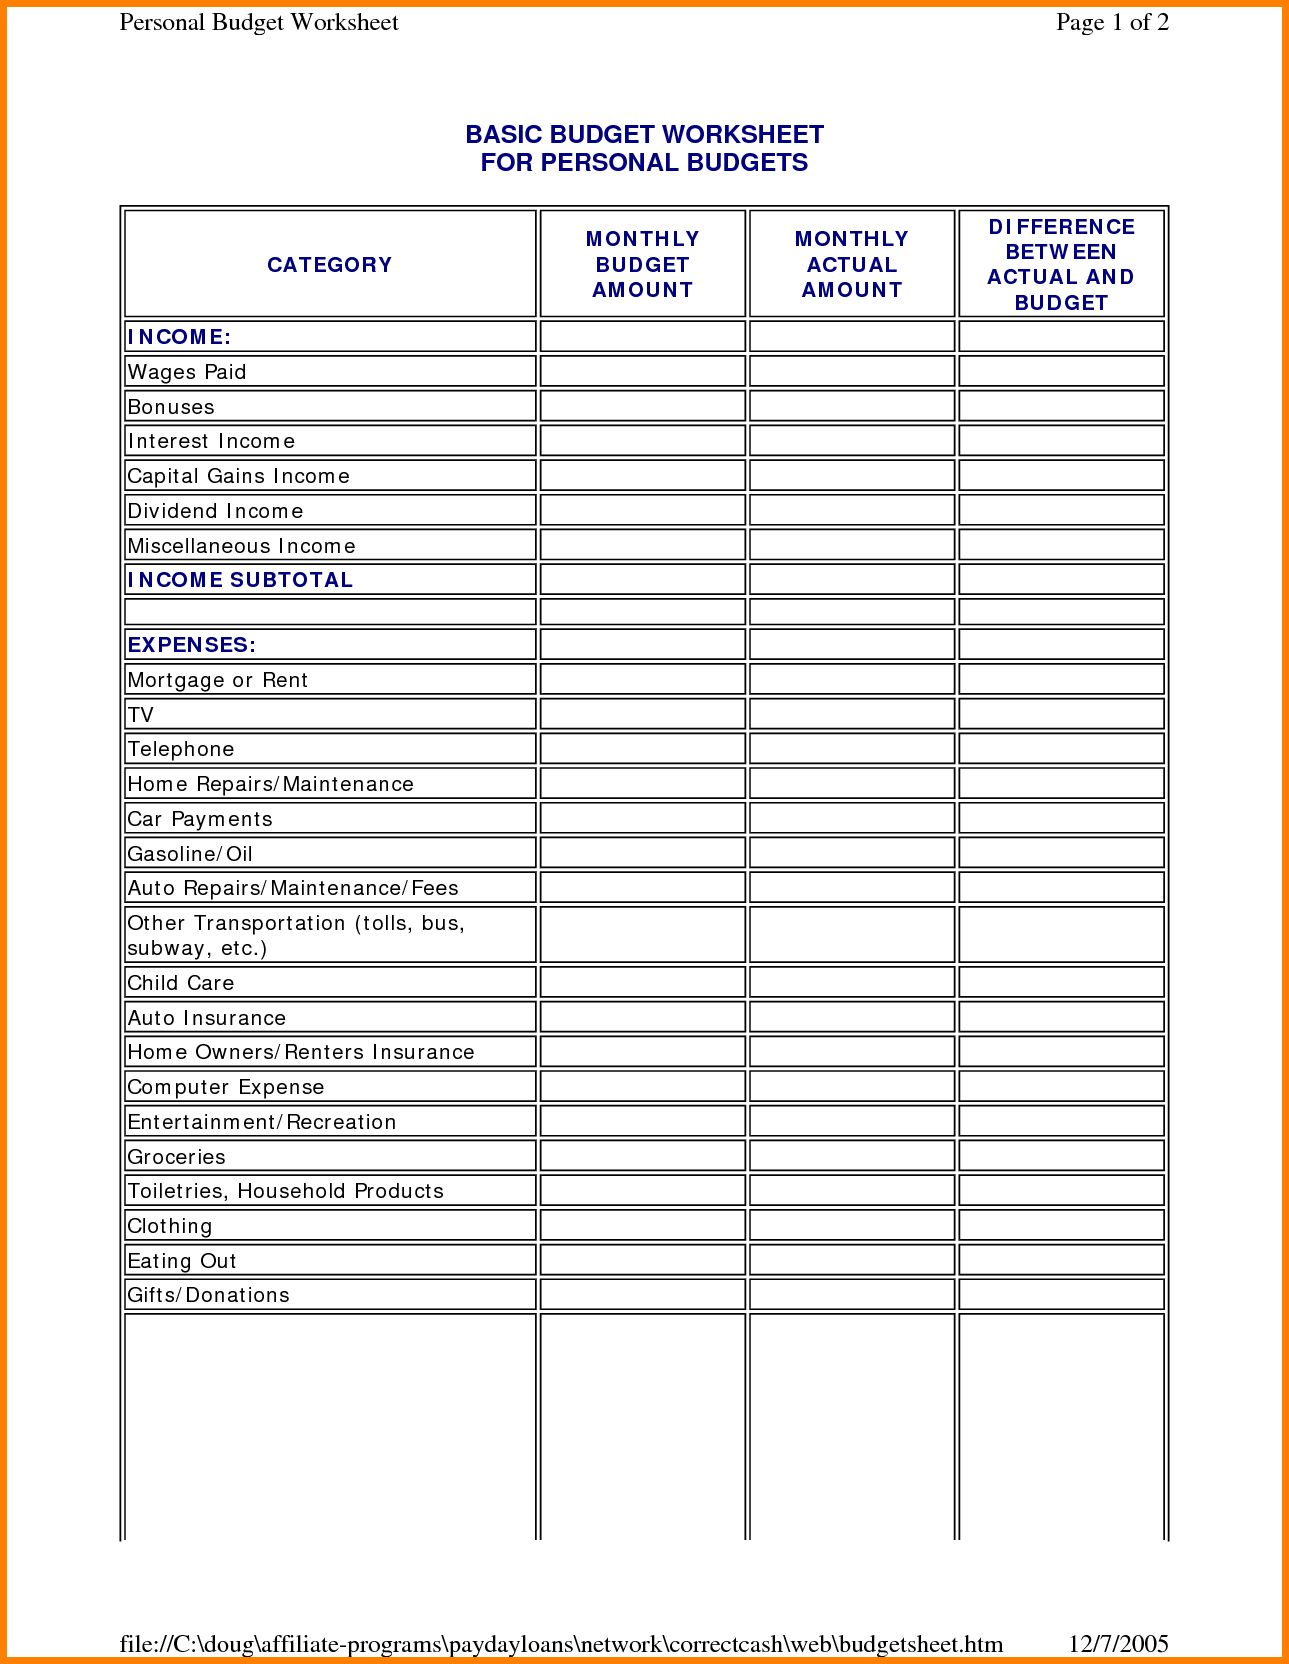 Basic Budget Worksheet College Student